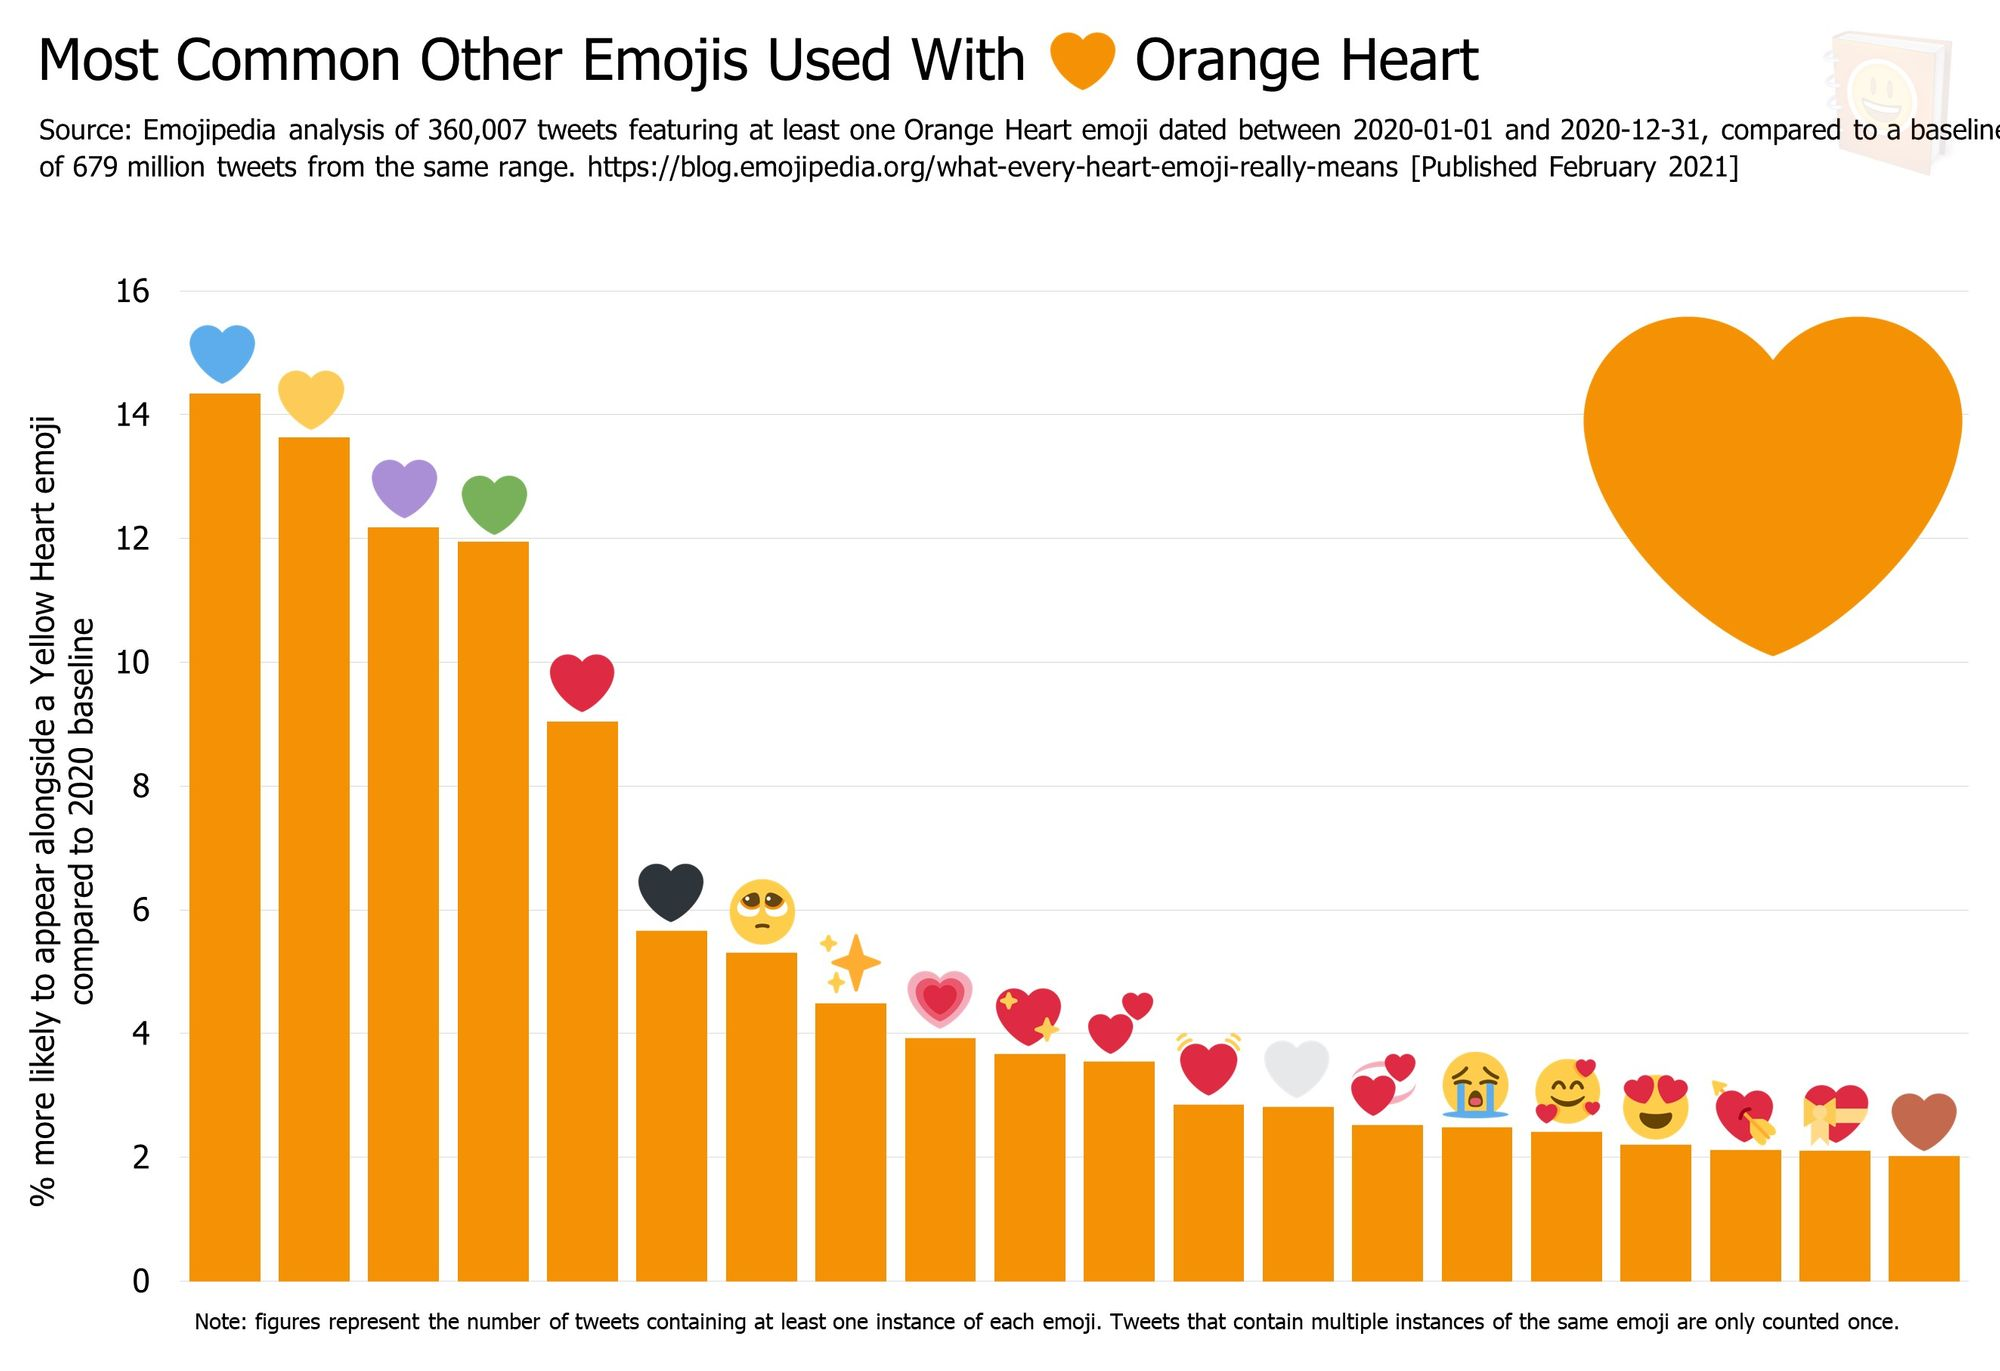 Emojipedia-Blog---What-Every-Heart-Emoji-Really-Means---Most-Common-Other-Emojis-Used-With------Orange-Heart